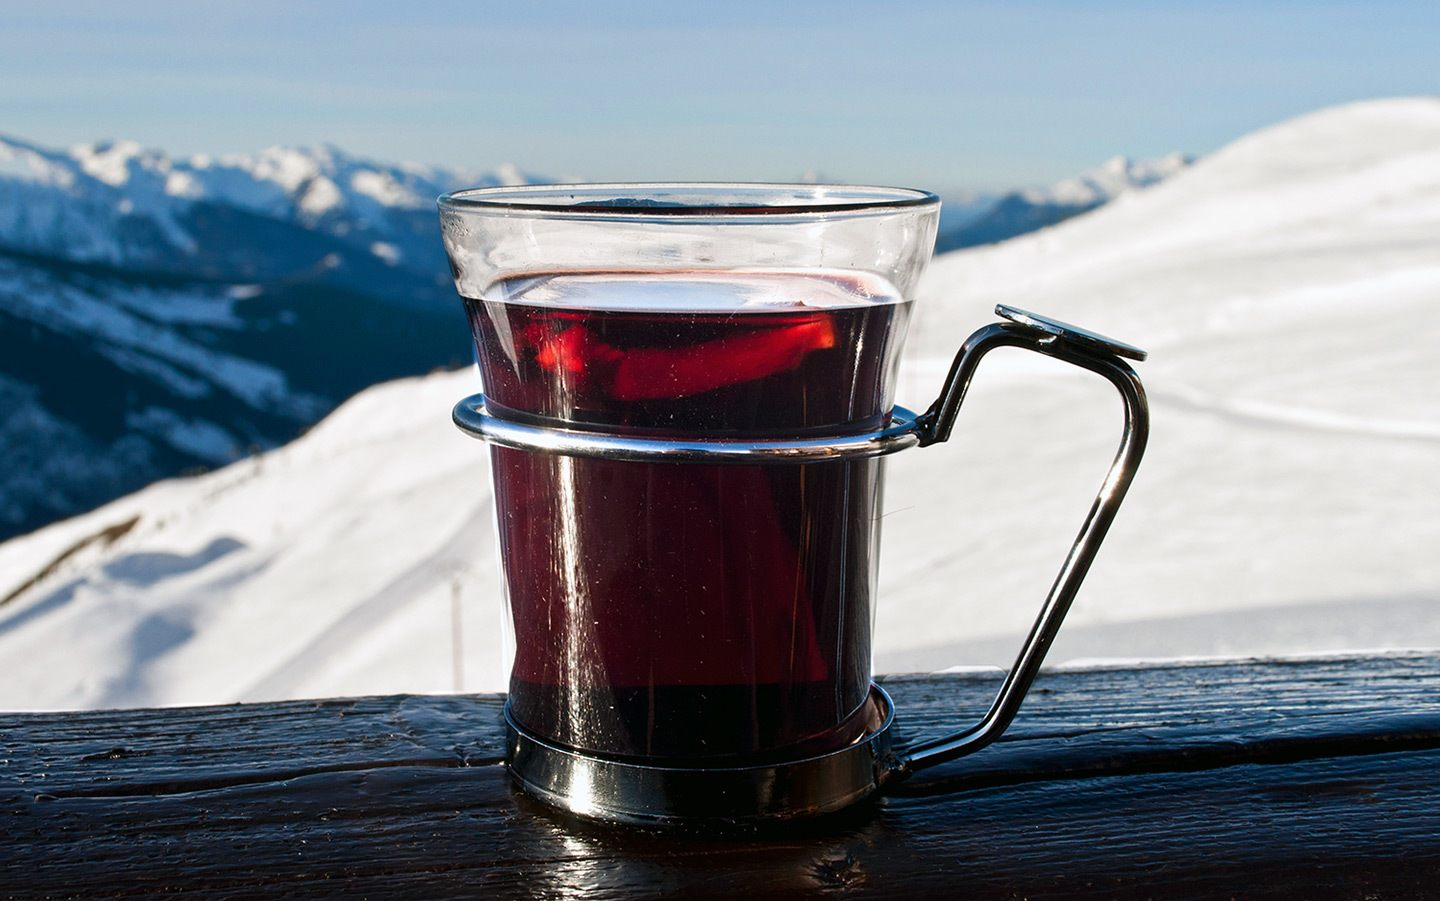 Vin chaud on the ski slopes